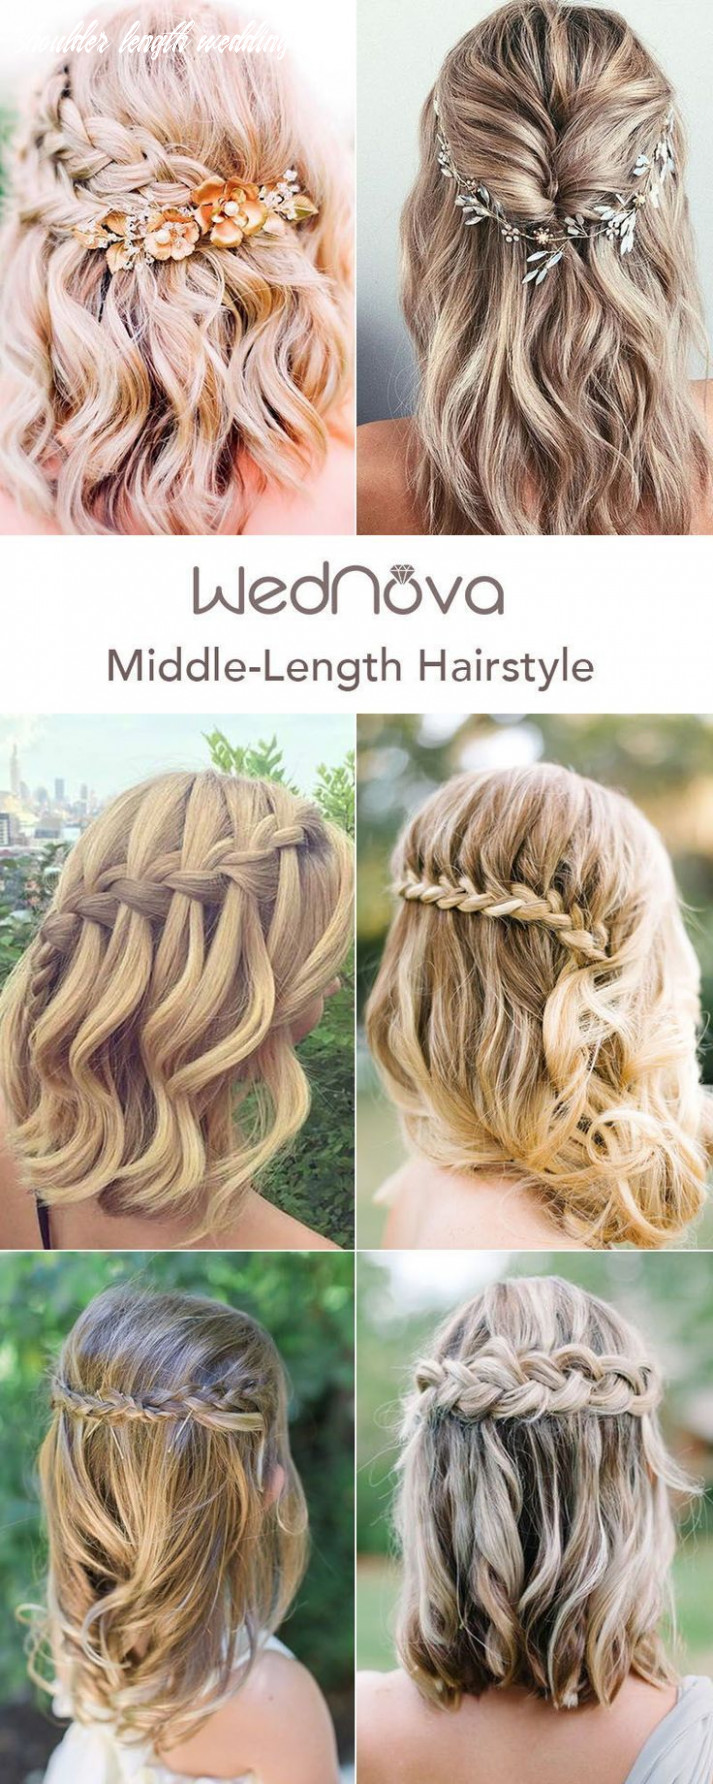 Simple wedding hairstyles for shoulder length hair in 10